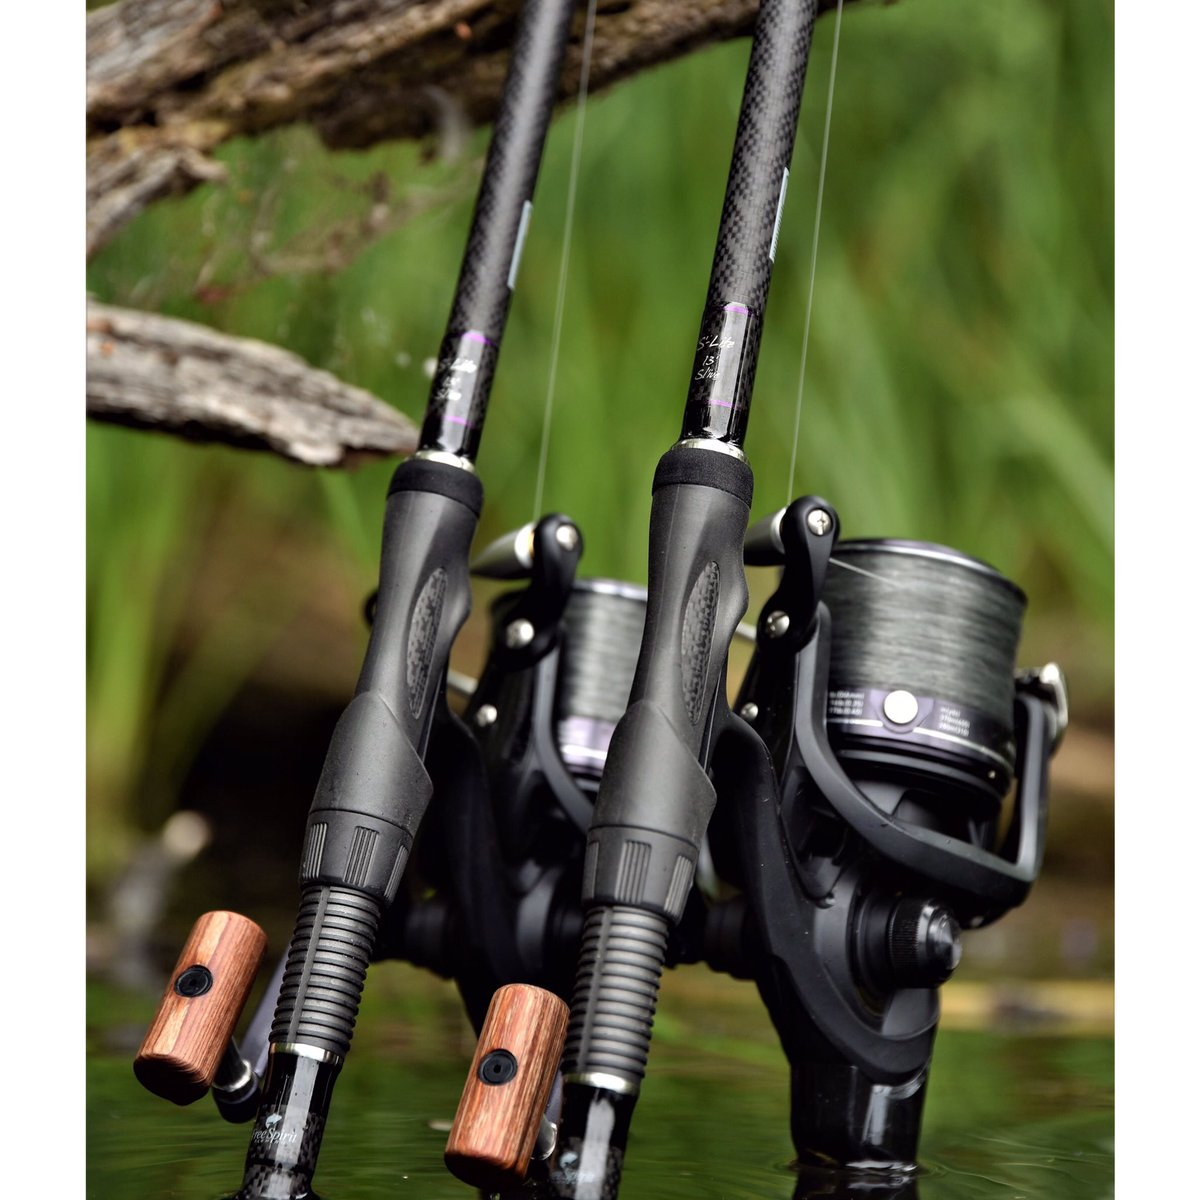 Power, precision, passion... #<b>Free</b>spiritXS #southcoastrods #carprods #carpfishing  #carp http